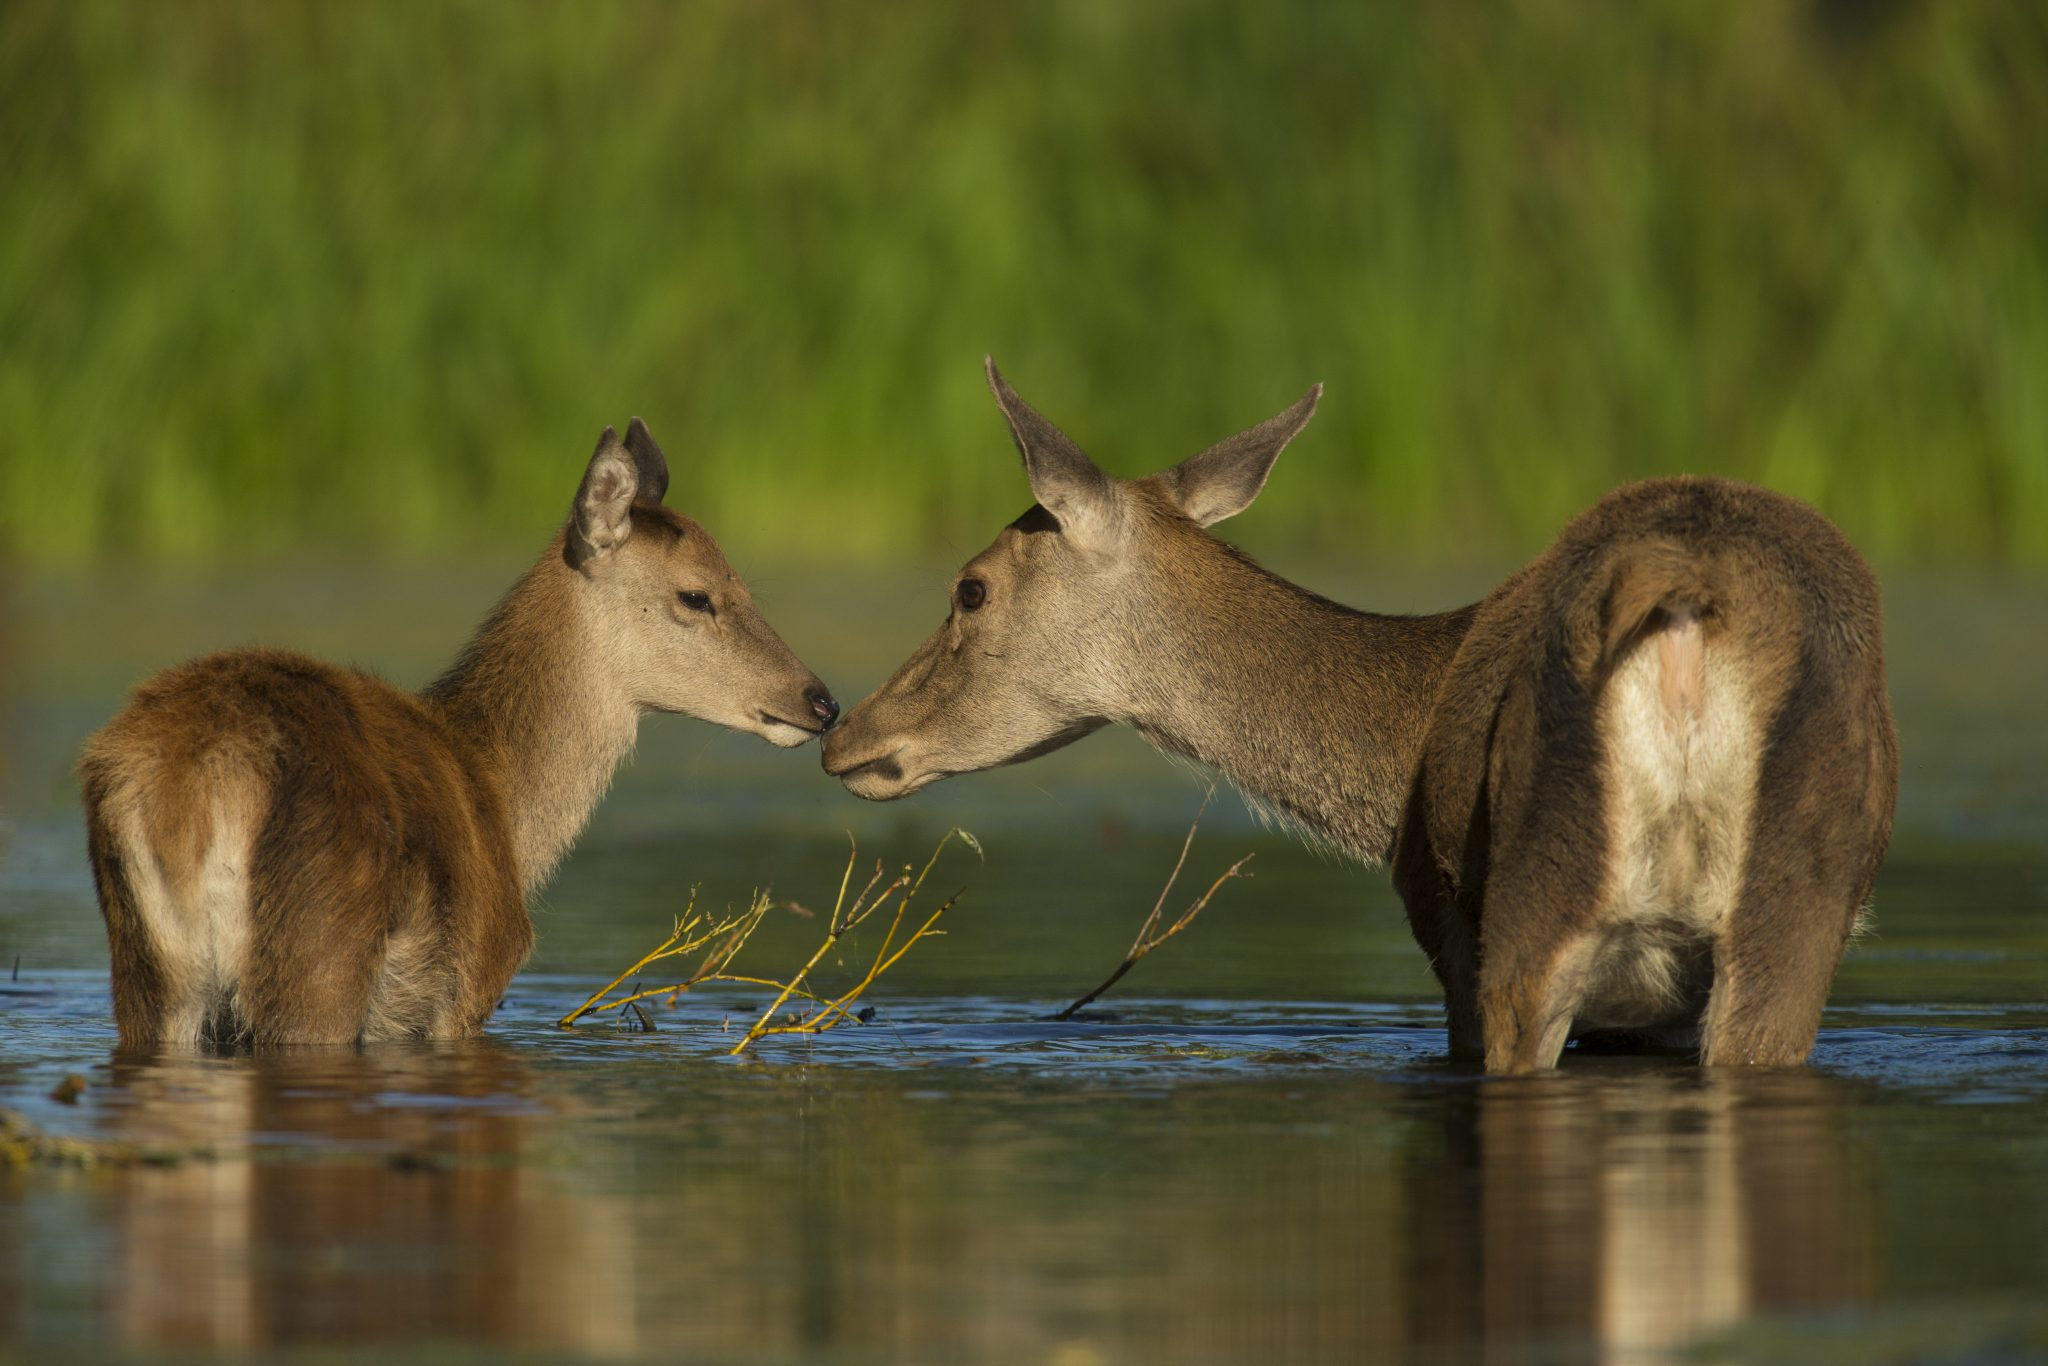 Should deer's impact on crops, woodlands, and marshes be reduced by culling?